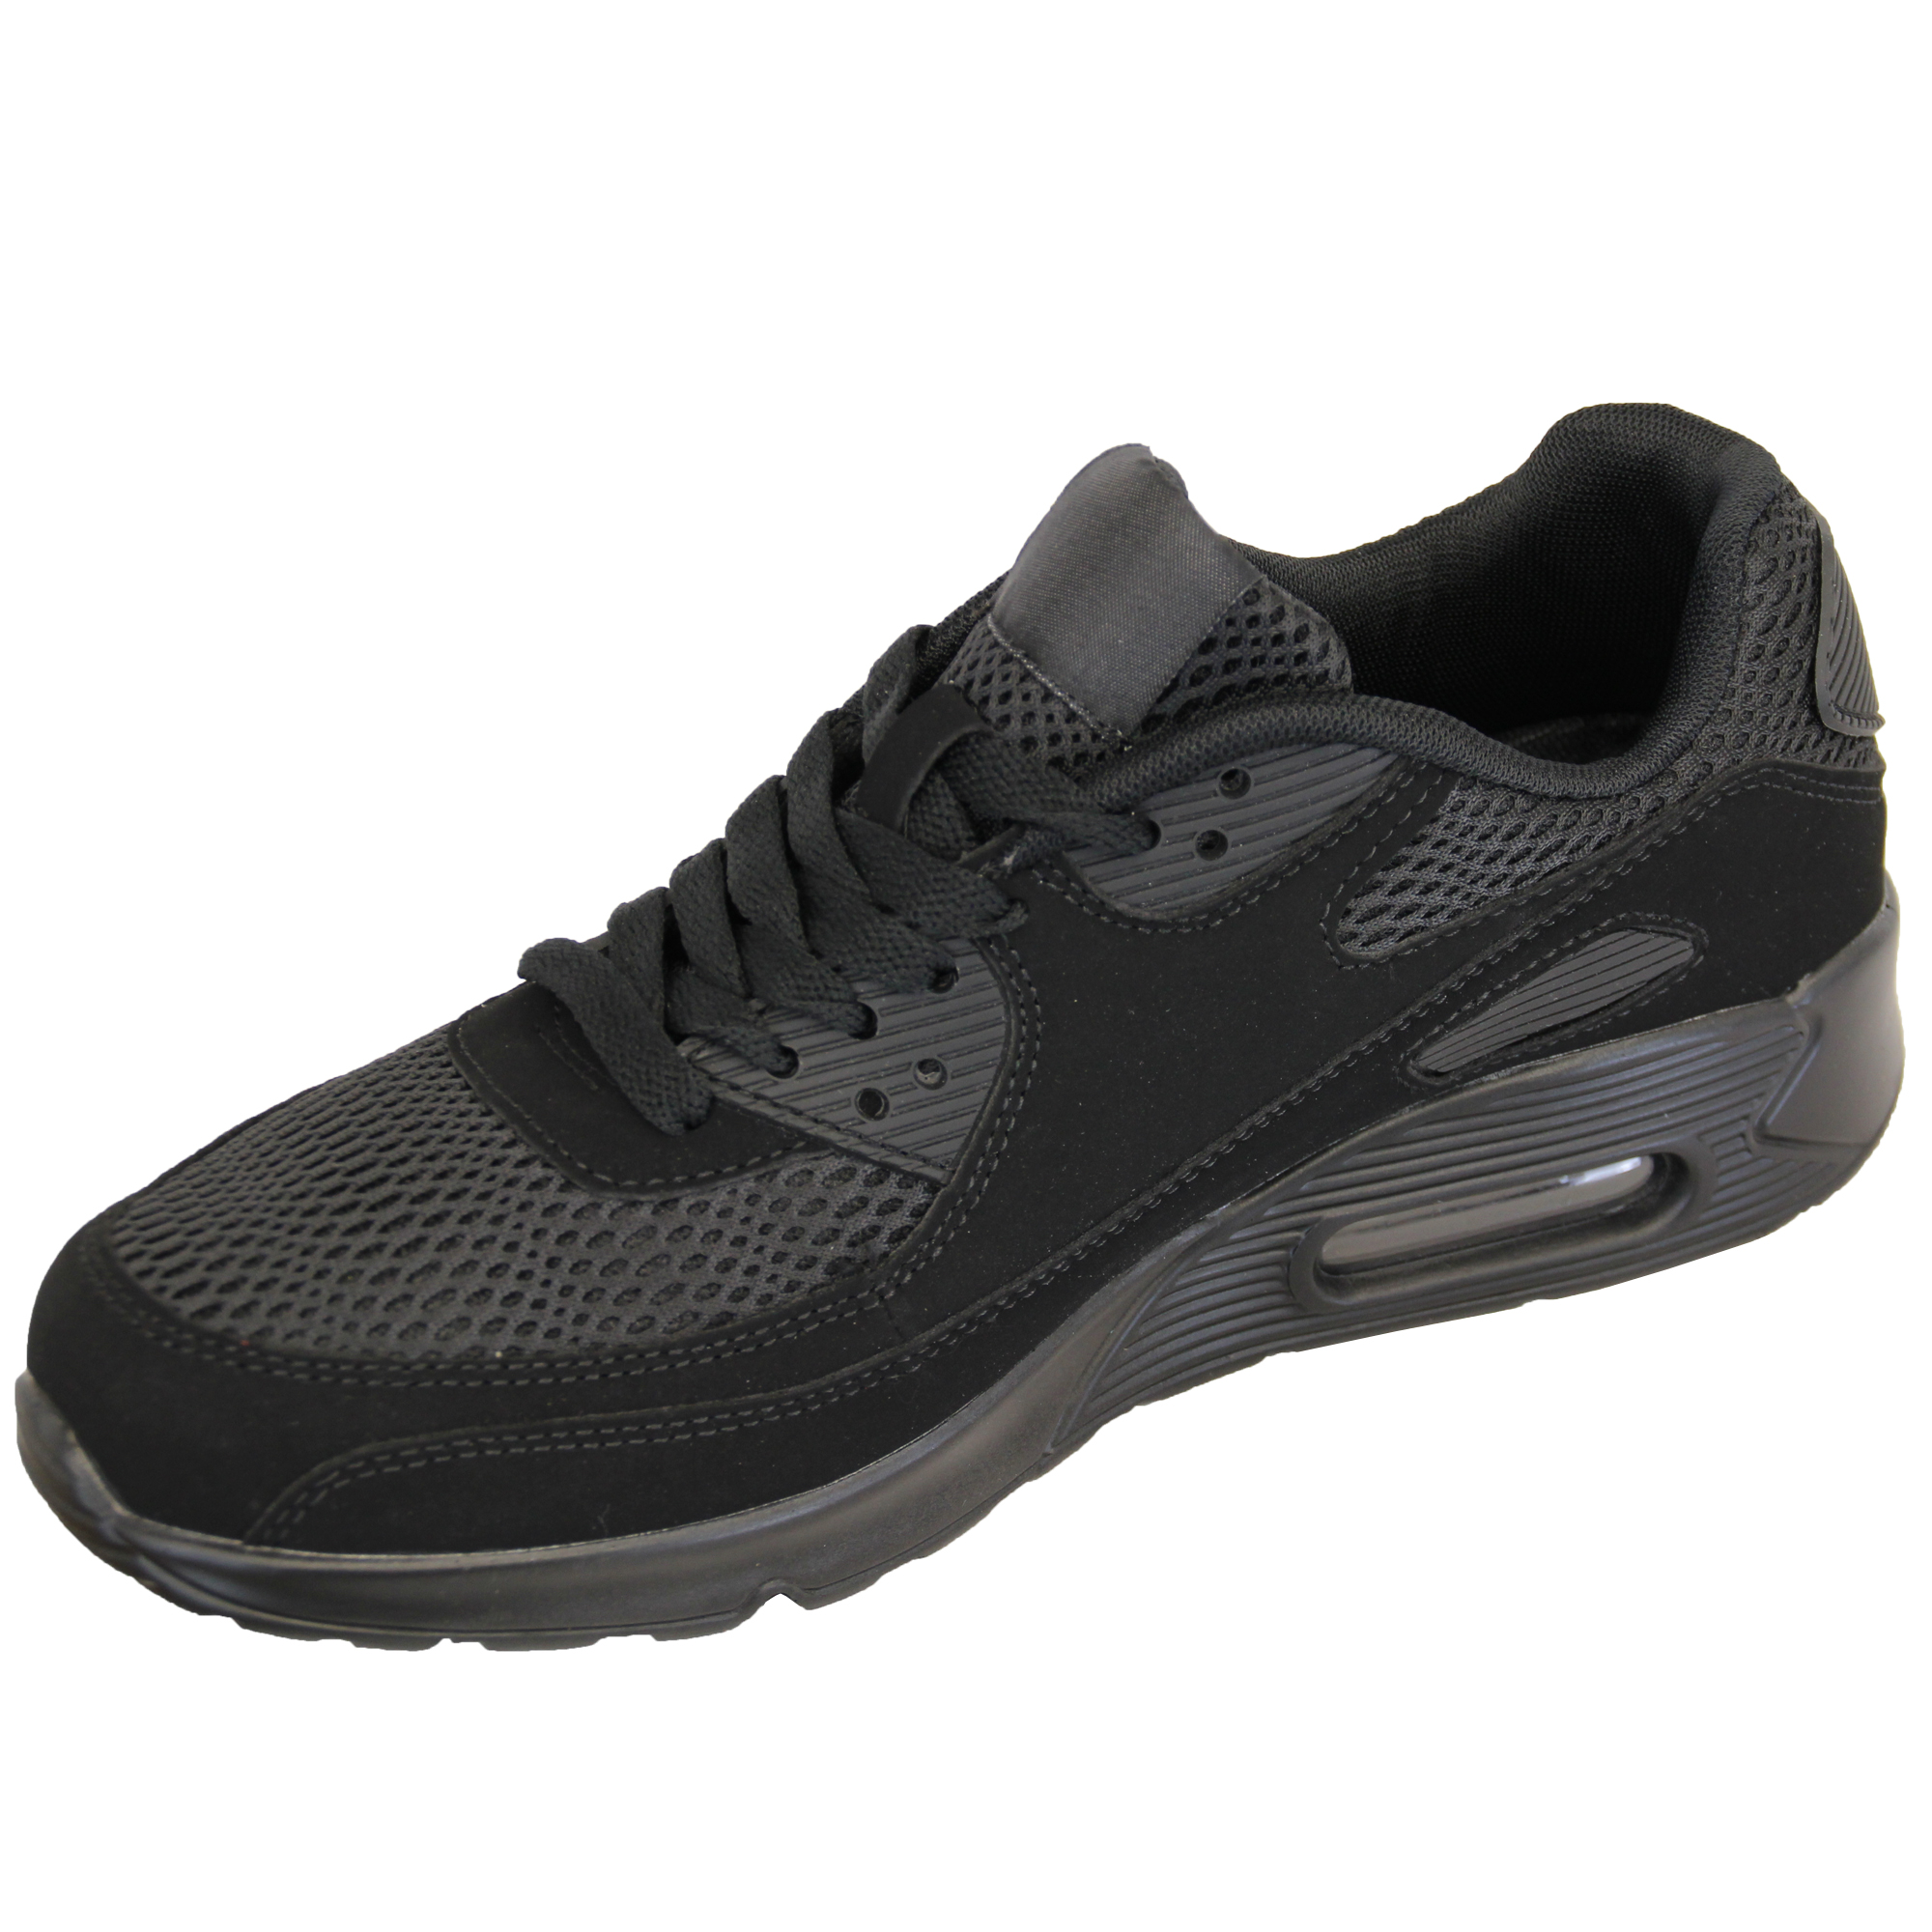 Mens-Bubble-Trainers-Lace-Up-Running-Shoes-Mesh-Jogging-Sports-Gym-Casual-New thumbnail 3